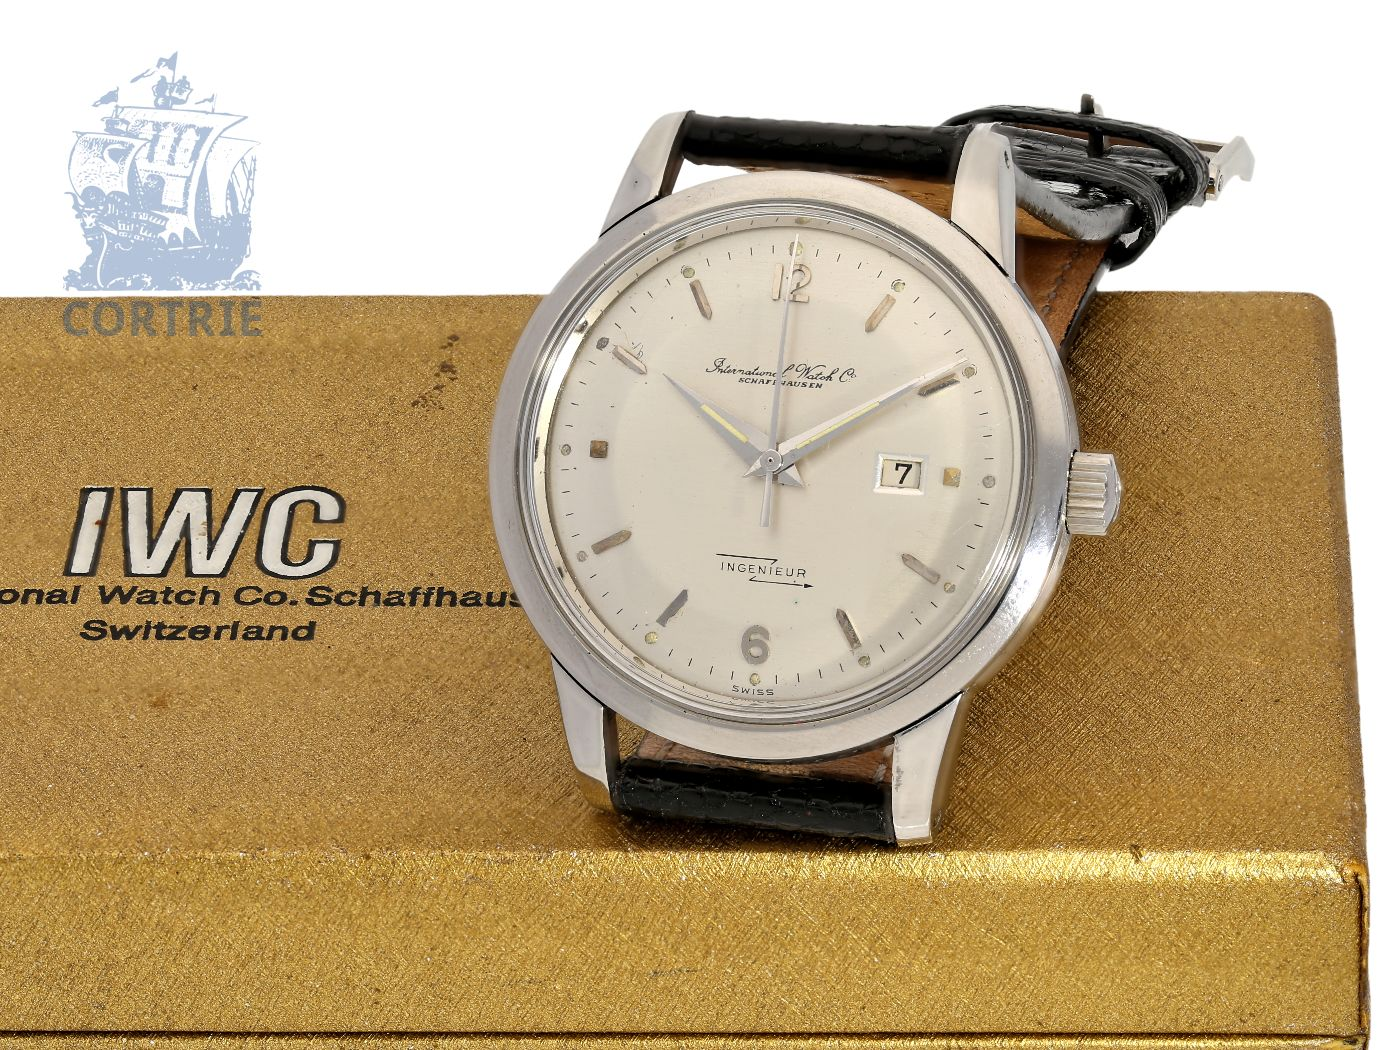 Pocket watch: fine and early IWC Ingenieur 8521, stainless steel, Schaffhausen 1955-